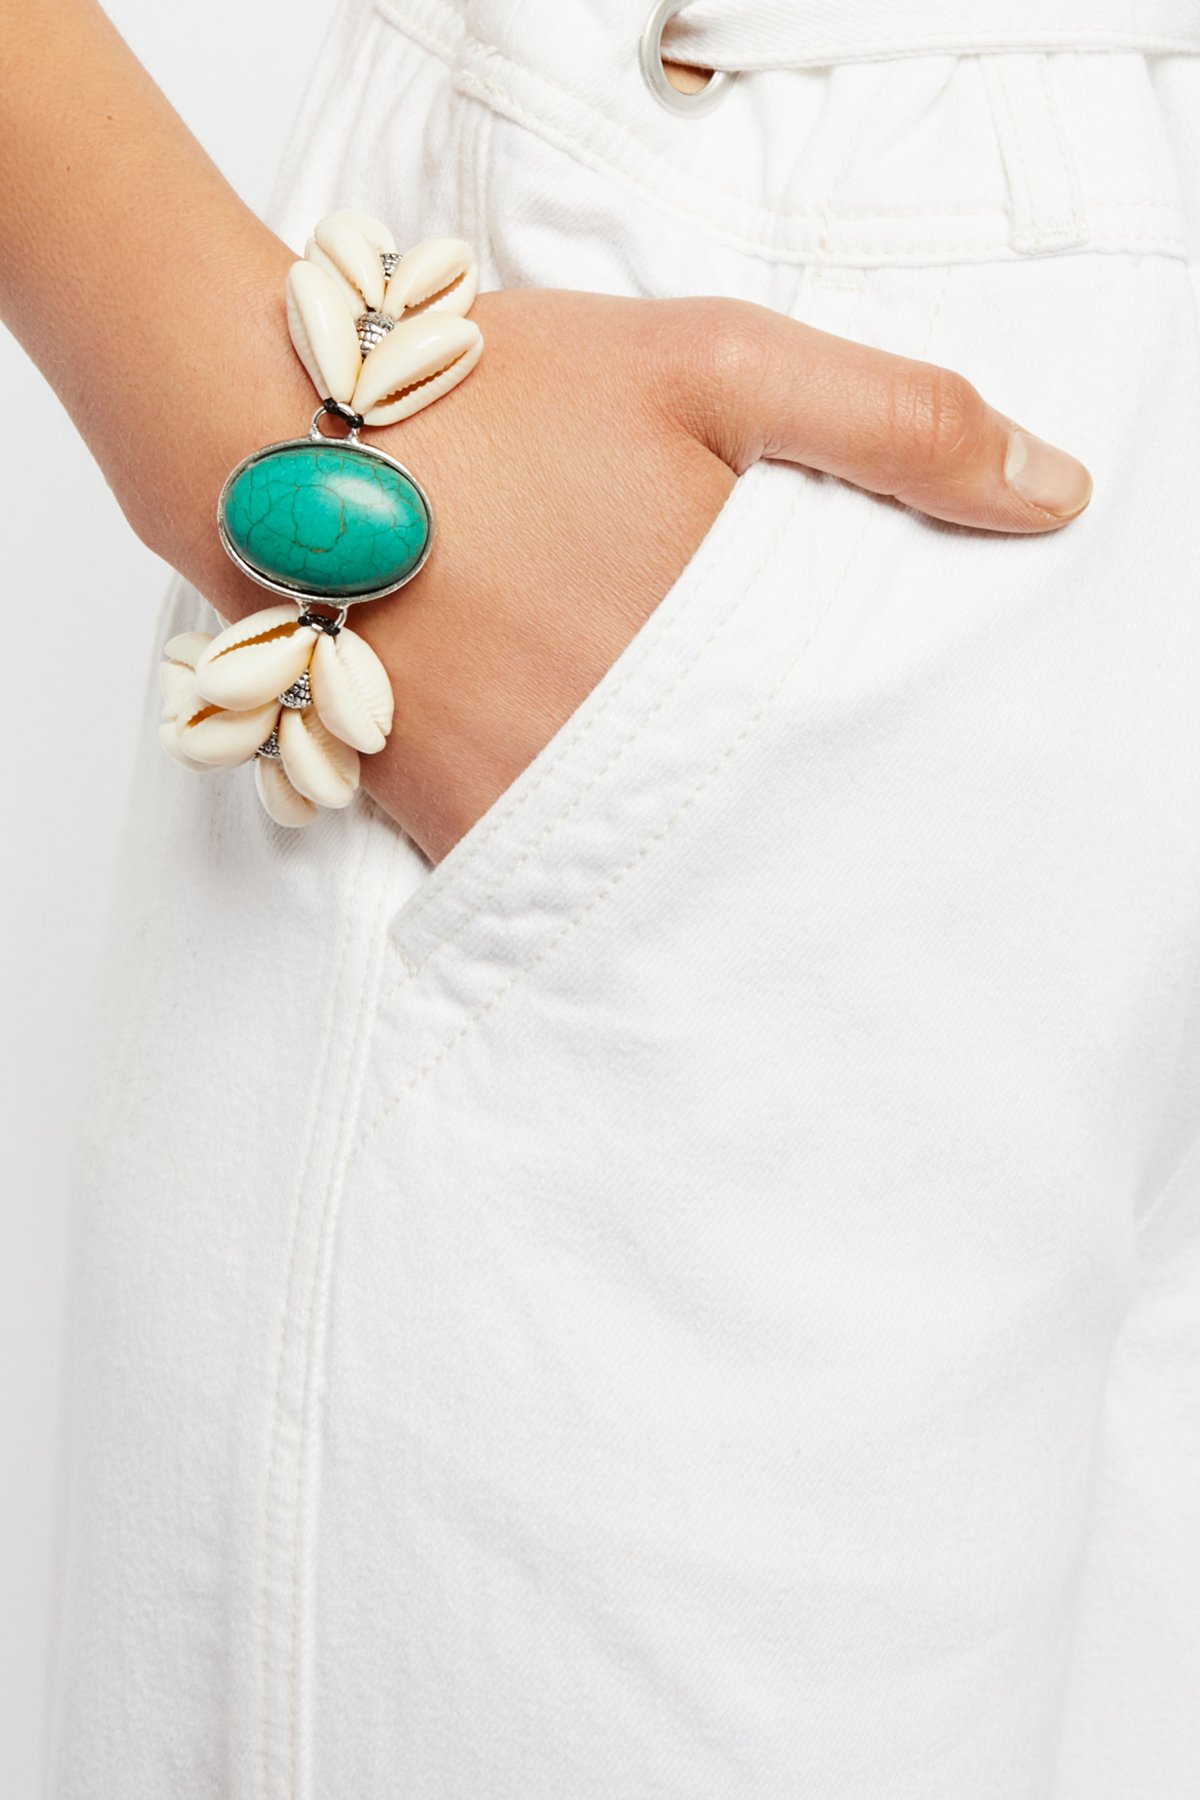 By The Sea Shell Turquoise Bracelet